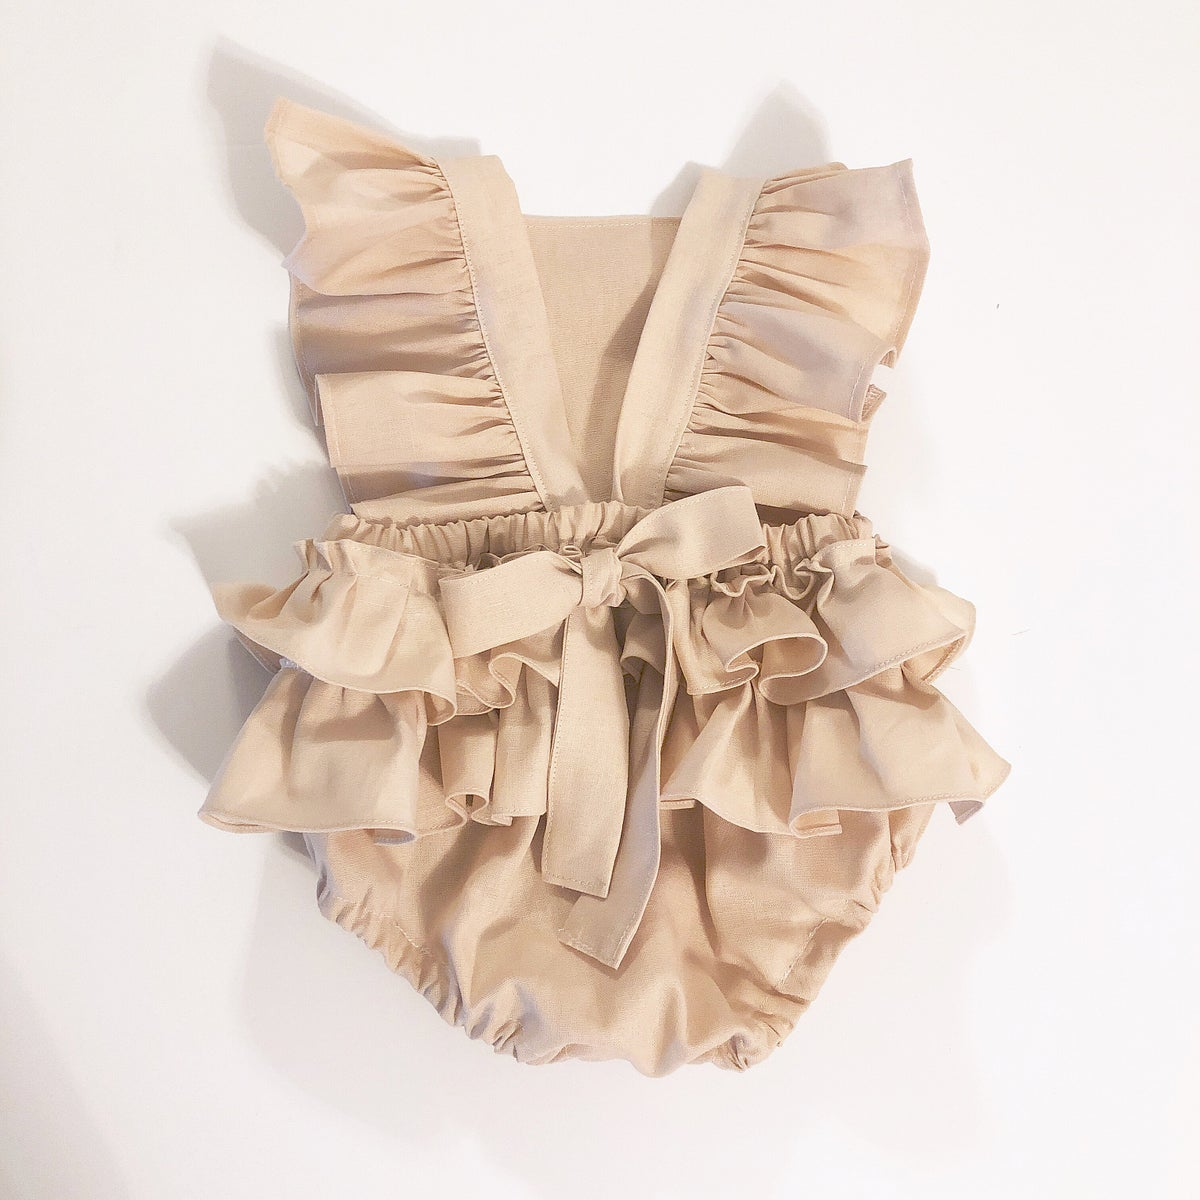 Image of Linen ruffle romper in peachy blush